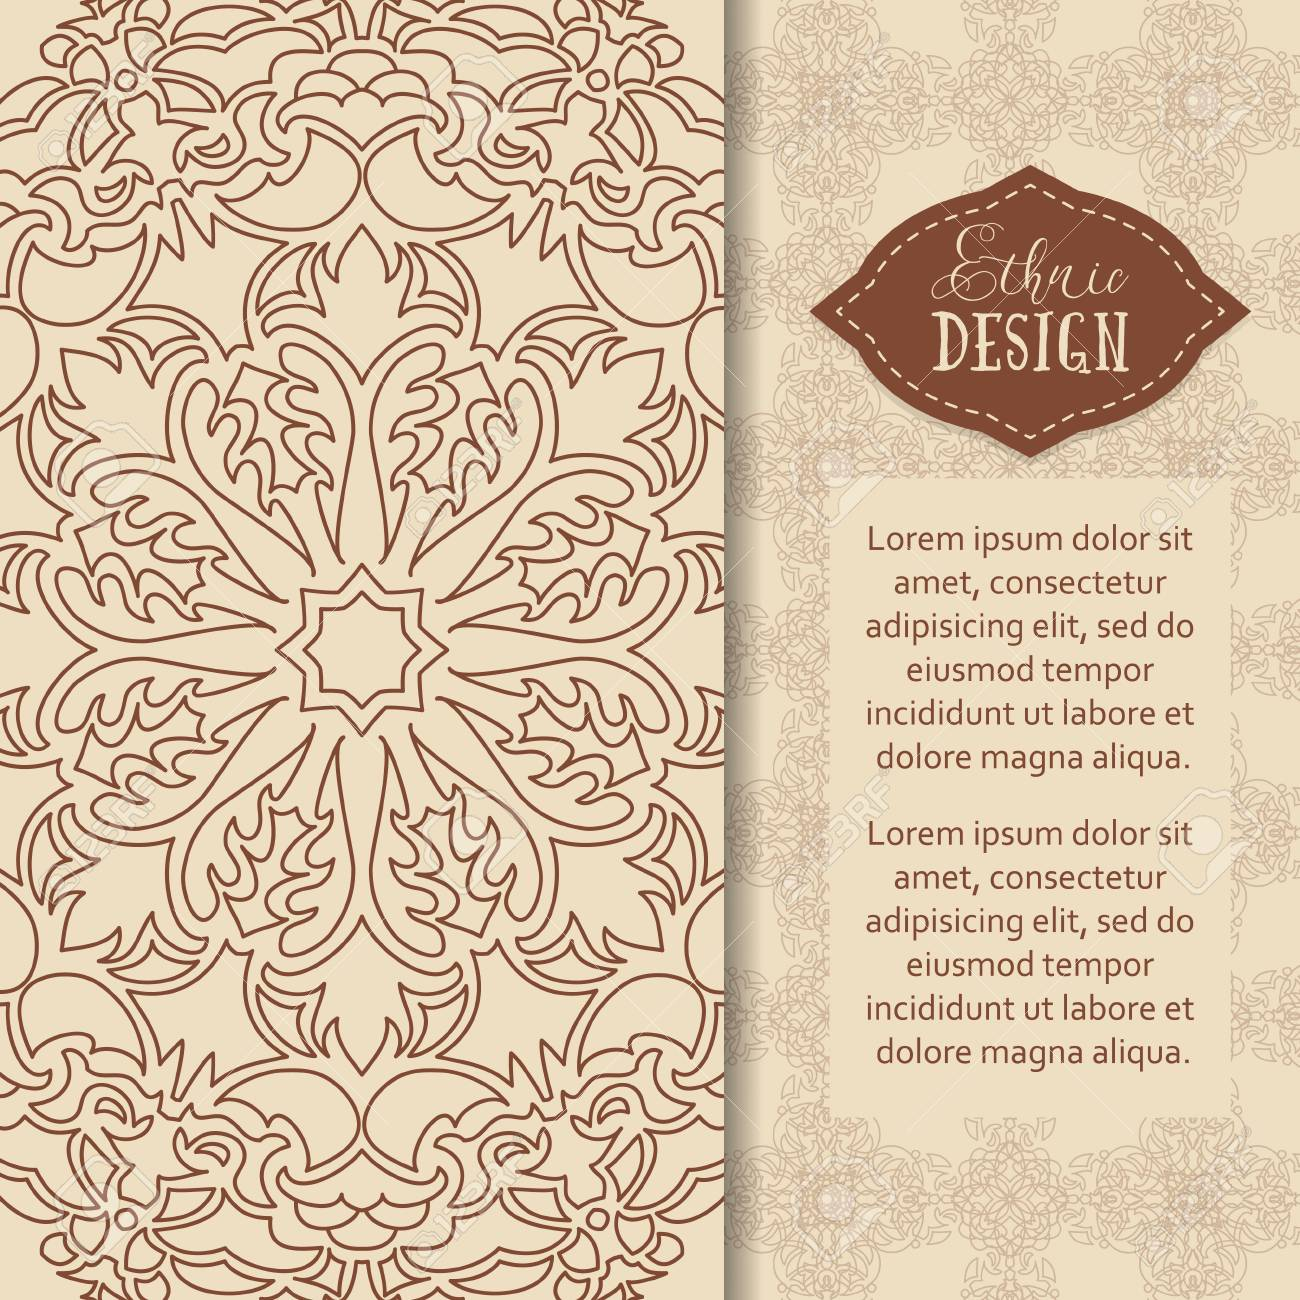 Ethnic design vector background vintage ornament pattern the vector background vintage ornament pattern the greeting card or invitation stopboris Choice Image